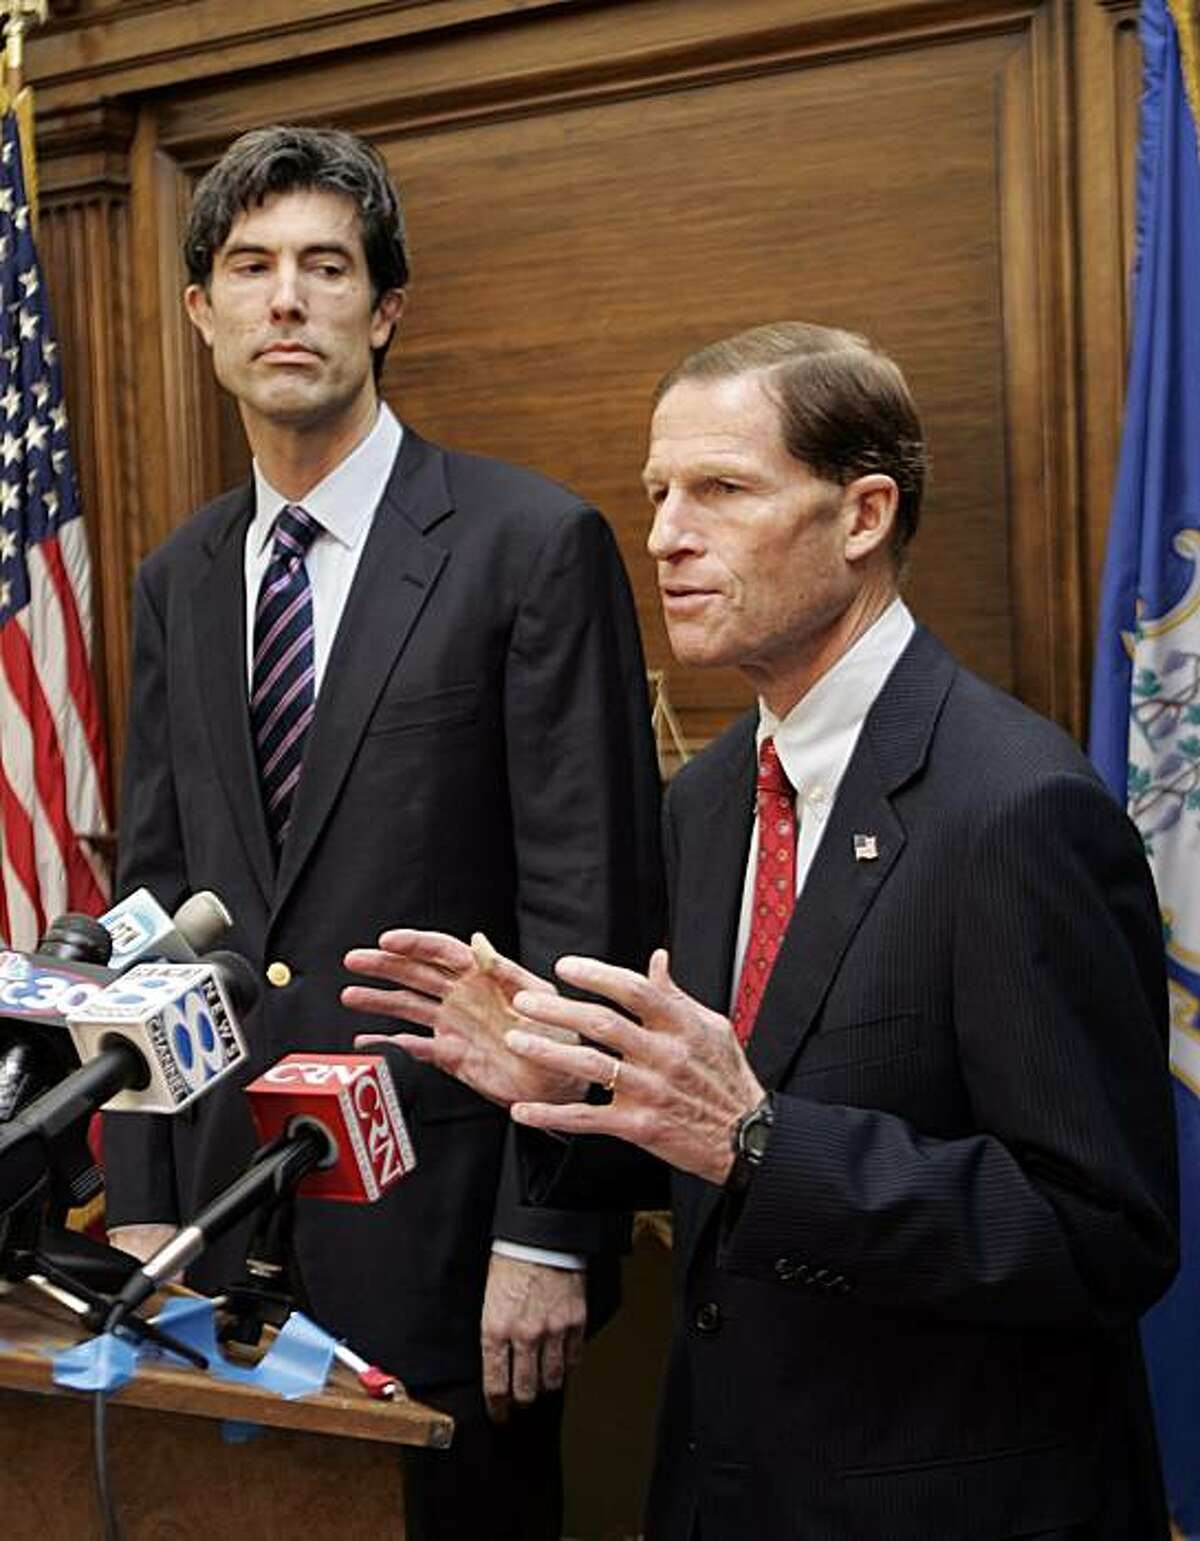 Jim Buckmaster, CEO of Craigslist, watches as Connecticut Attorney General Richard Blumenthal speaks at a news conference in Blumenthal's office in Hartford, Conn., Thursday, Nov. 6, 2008. (AP Photo/Bob Child)